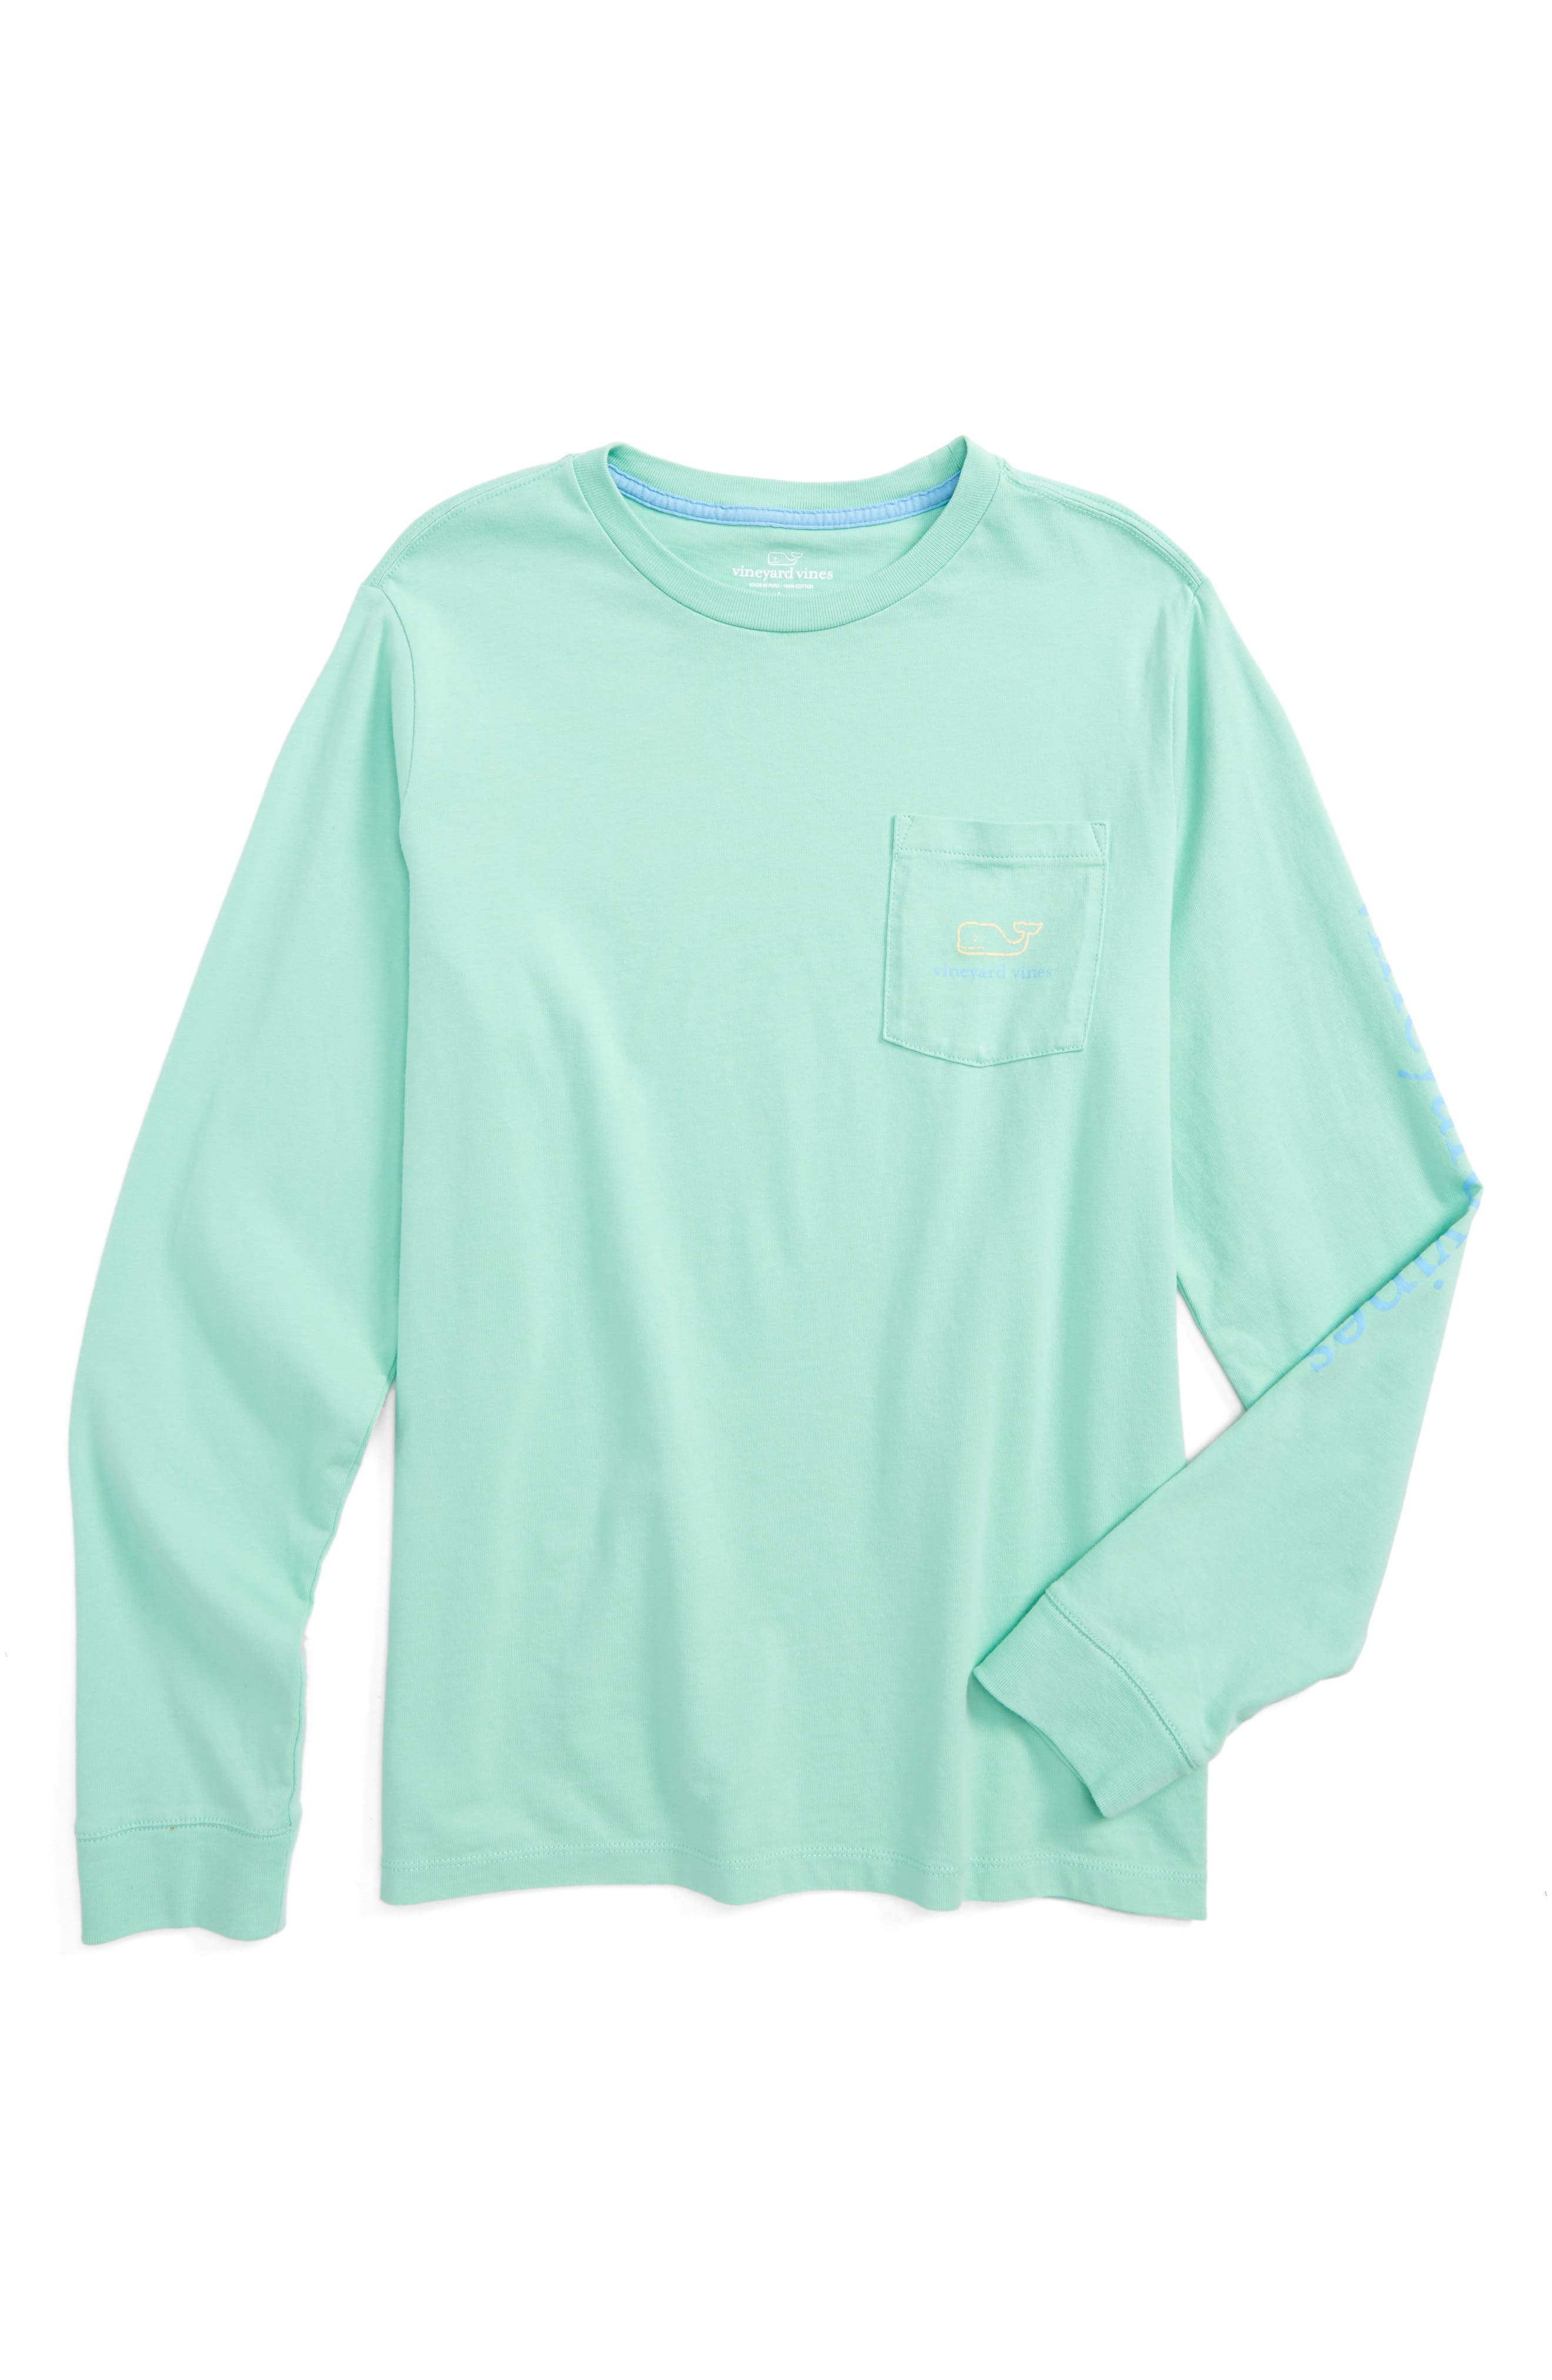 Vintage Whale Long Sleeve Pocket T-Shirt,                         Main,                         color, 343